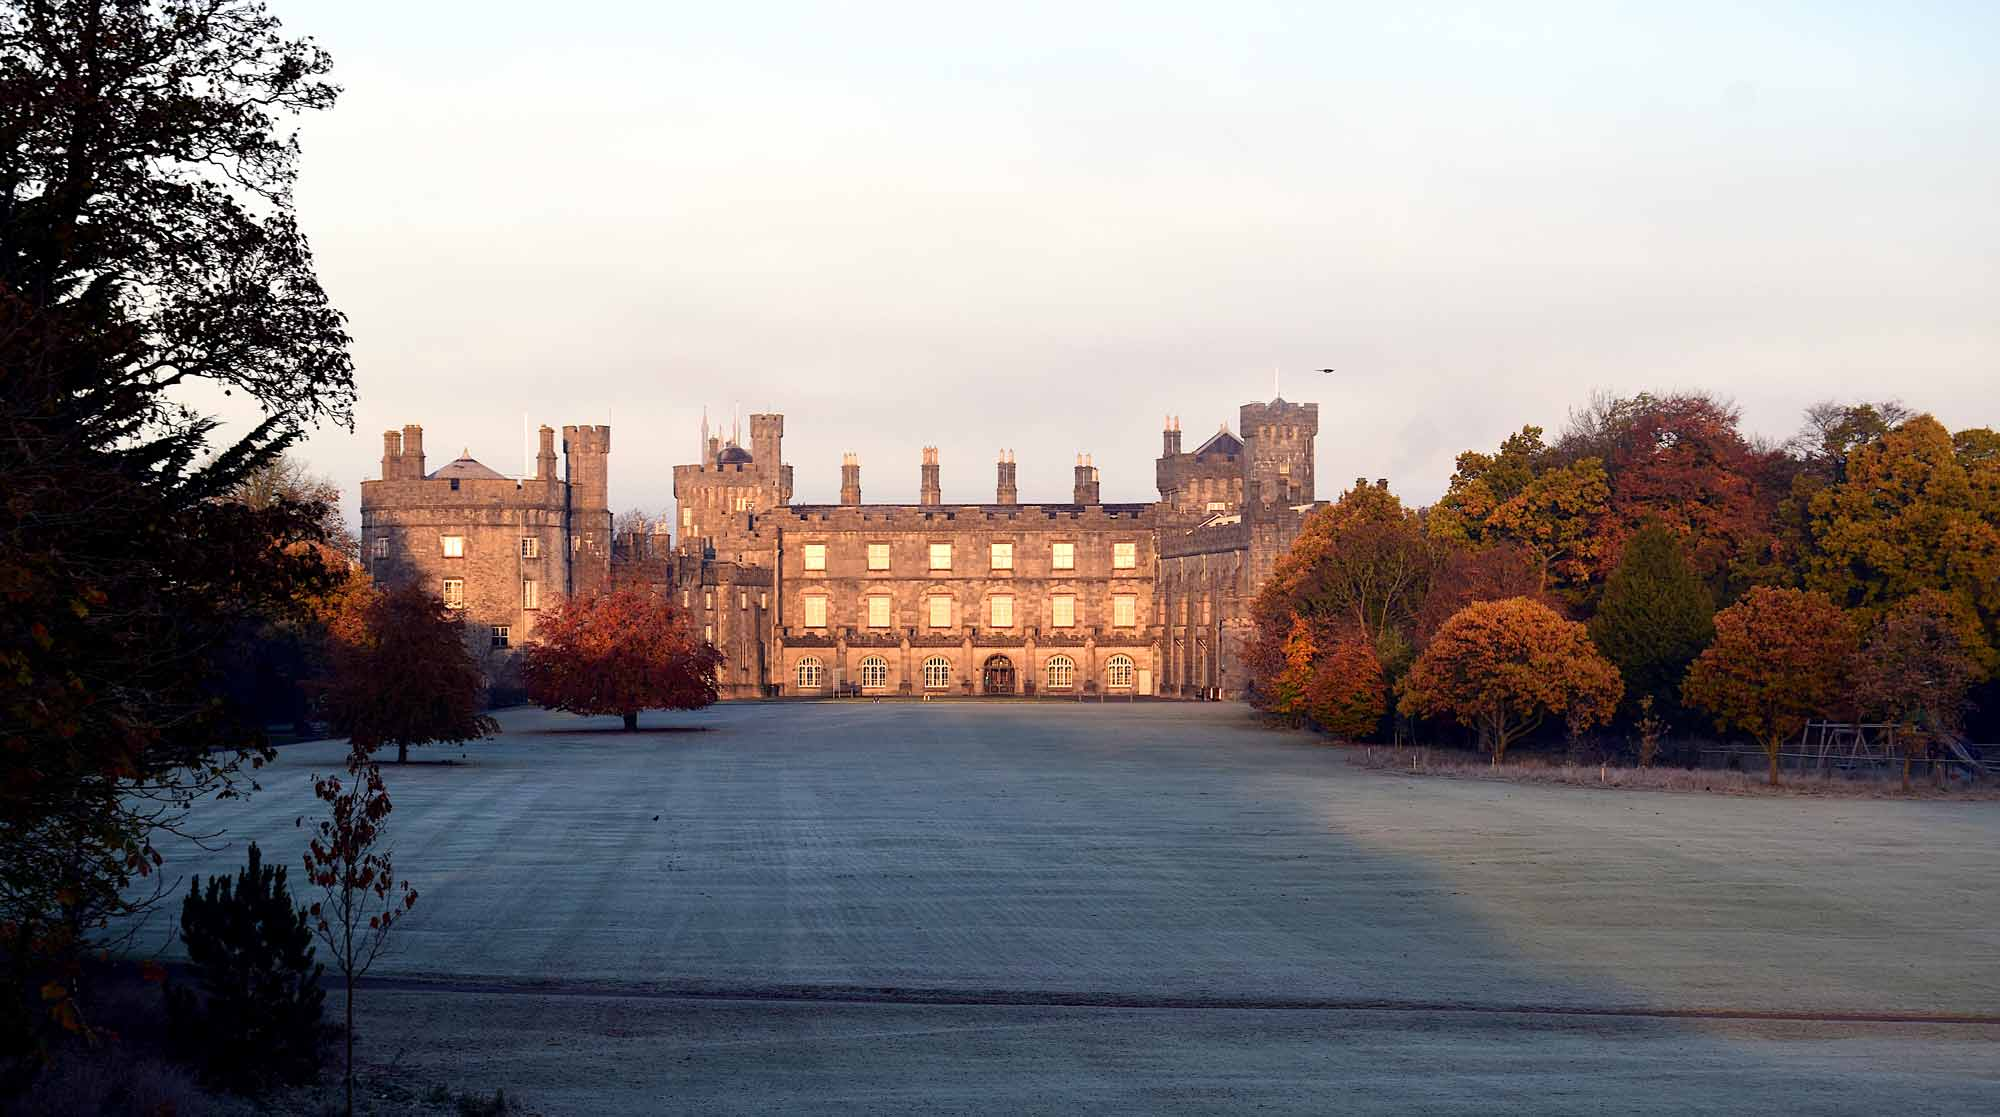 View of the front of Kilkenny Castle on a bright frosty morning